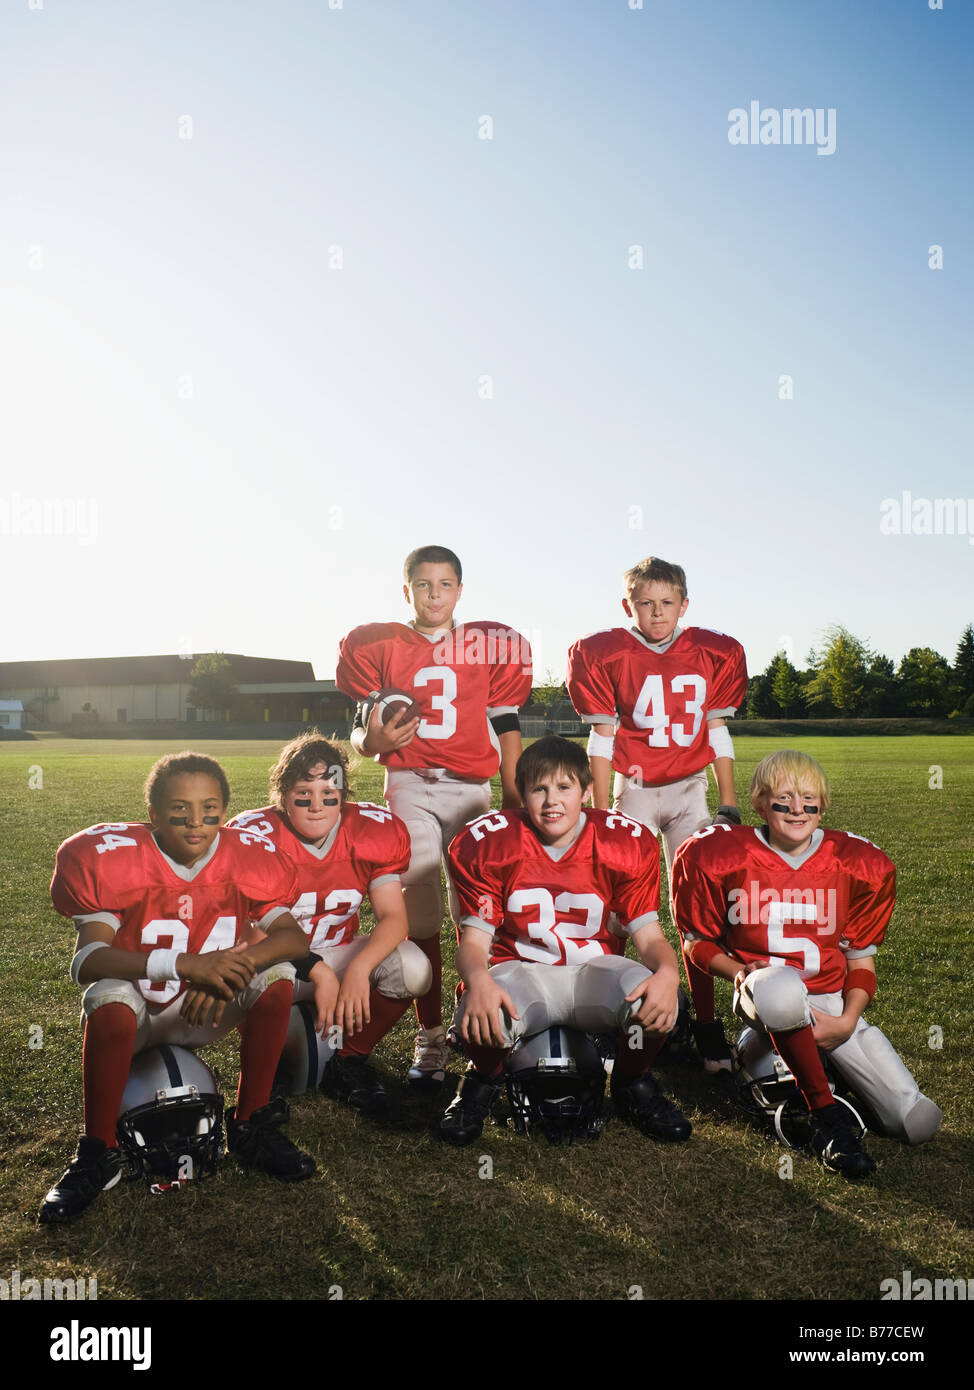 Portrait of youth football team on field - Stock Image